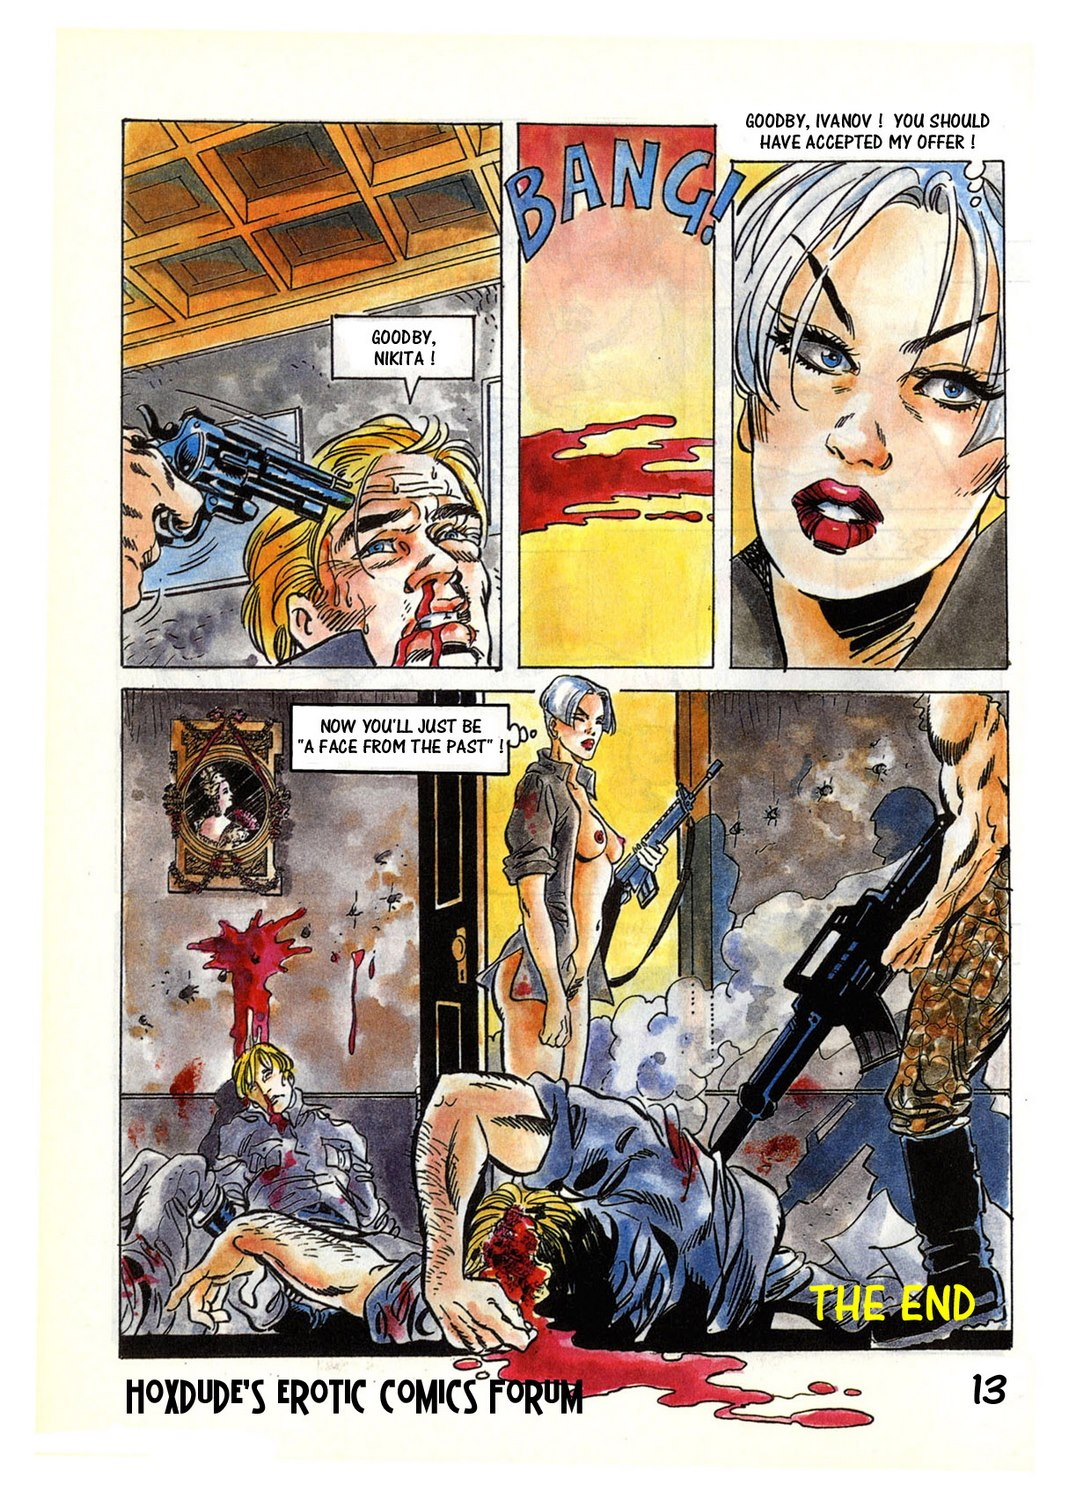 A Face from the Past – Onnis/Pesce (Erotic Comix)